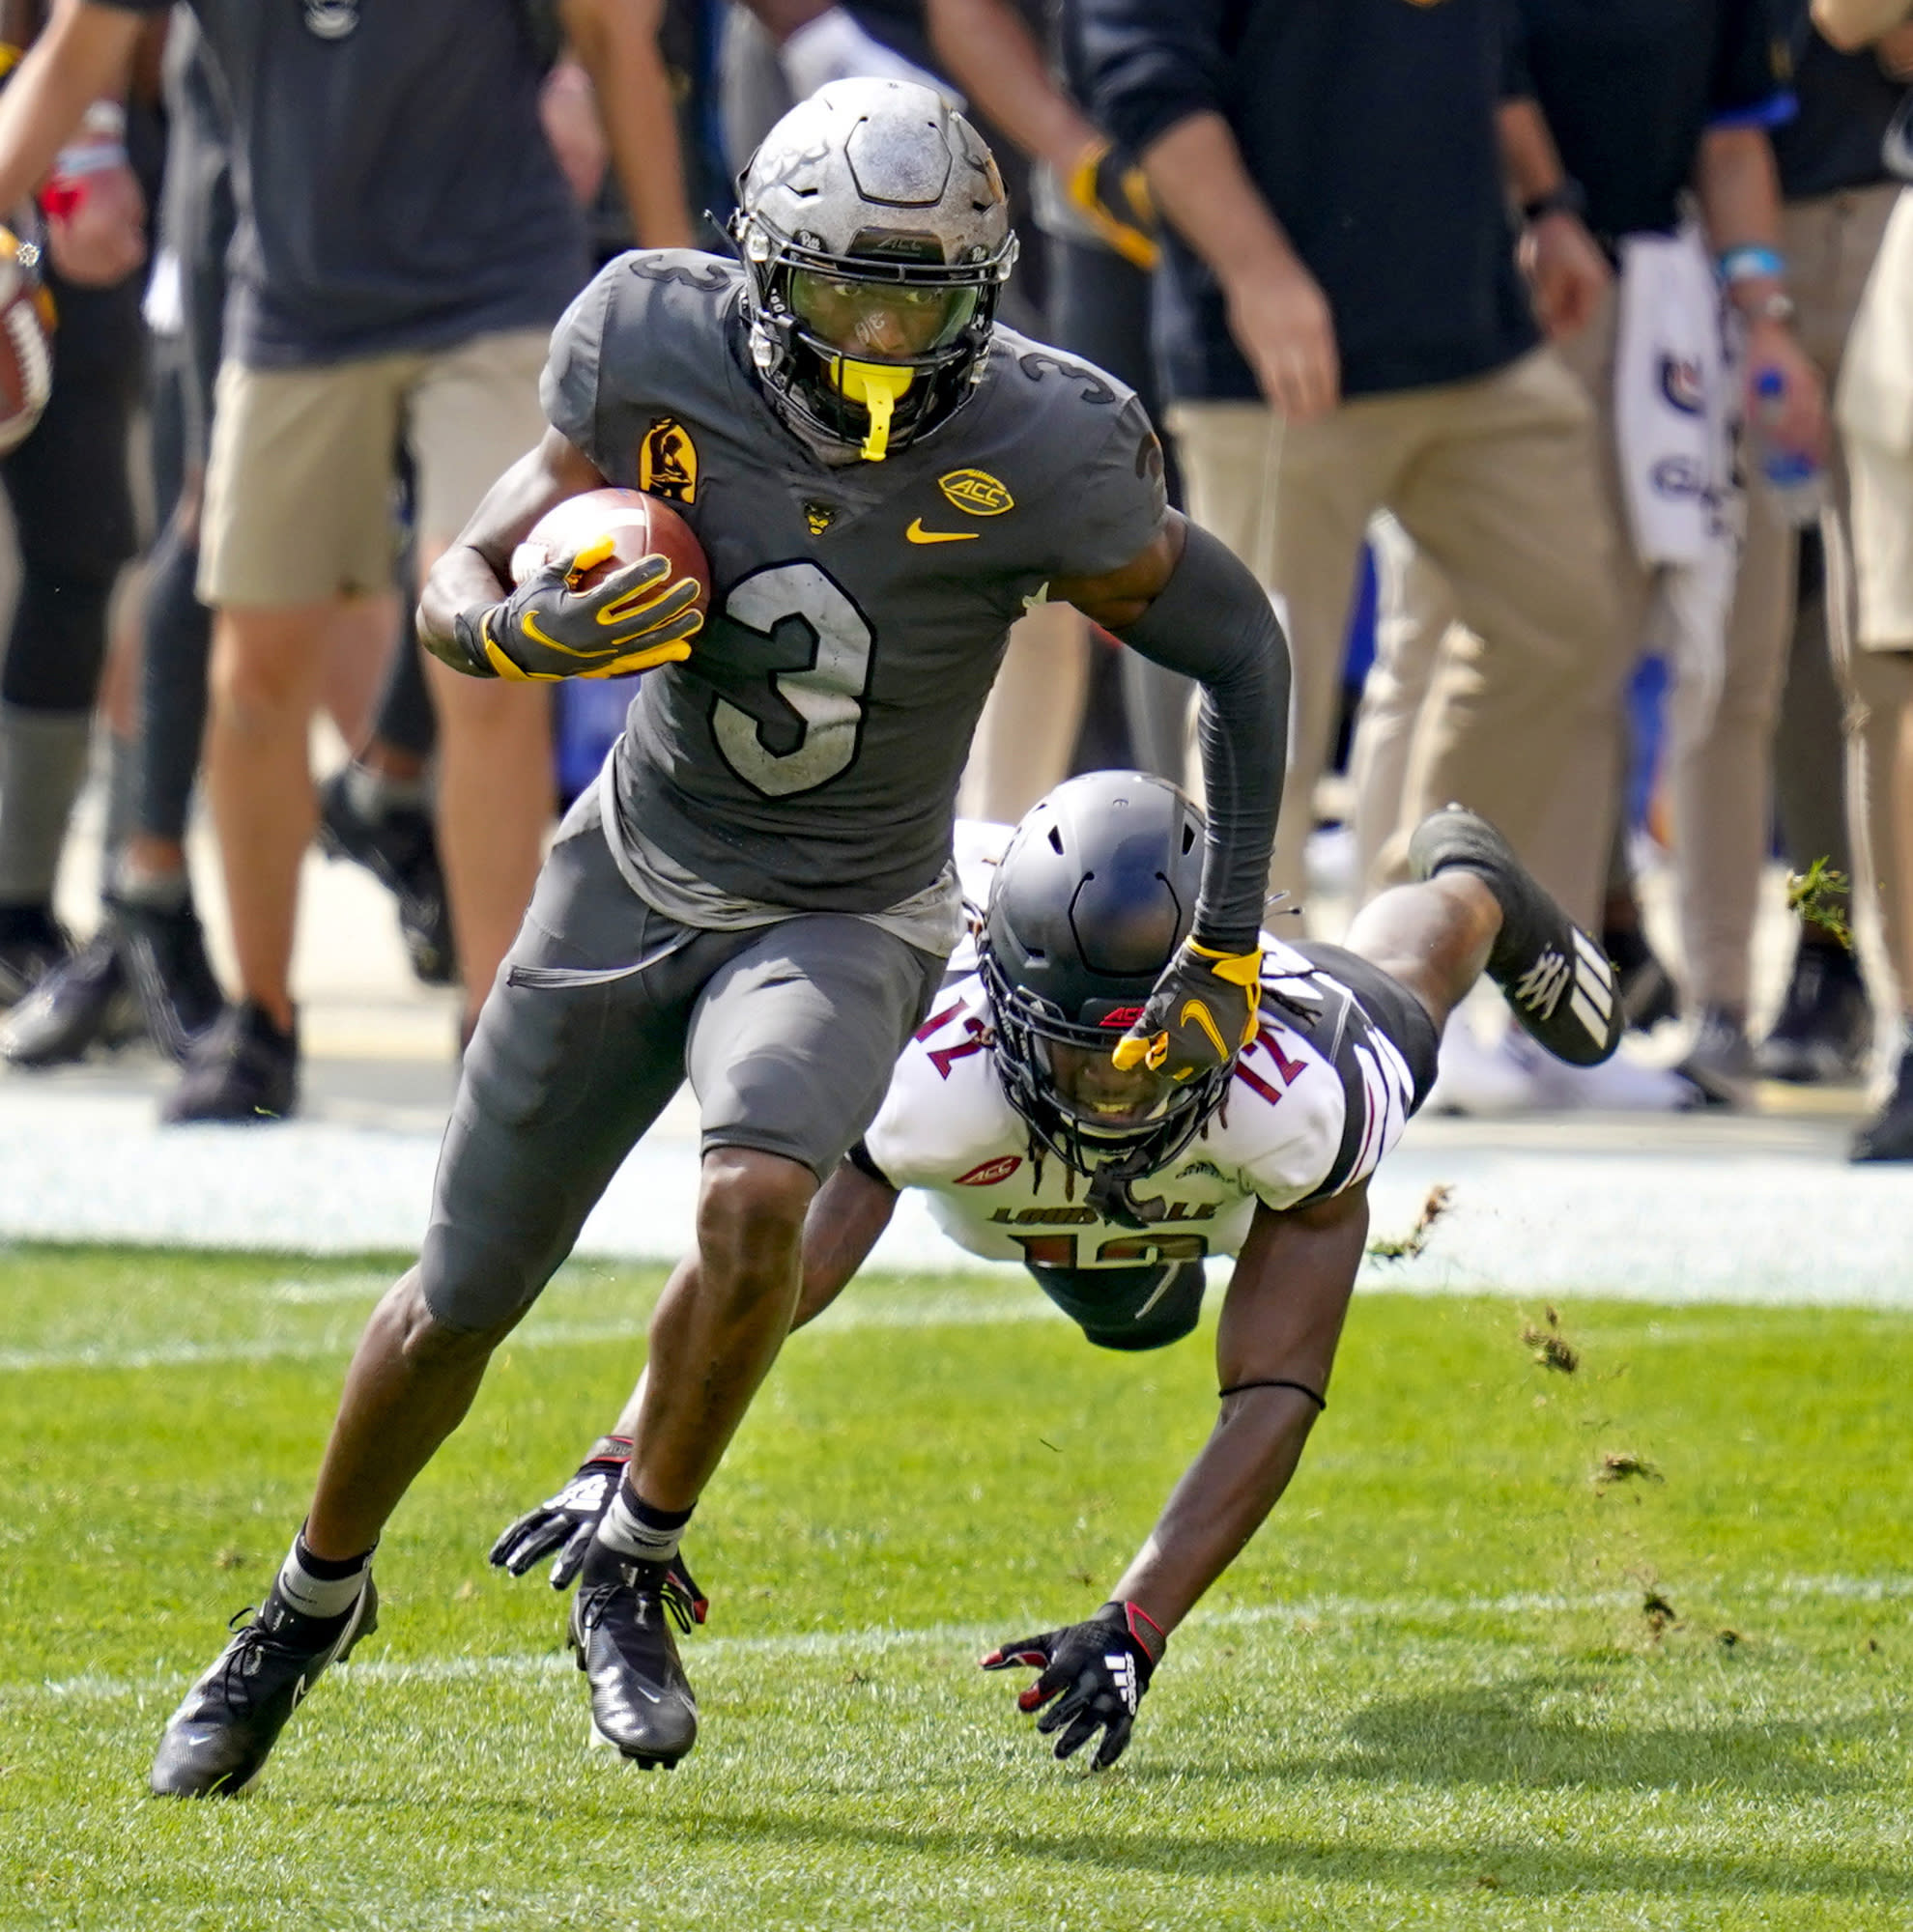 Pittsburgh wide receiver Jordan Addison (3) gets past a diving Louisville linebacker Dorian Etheridge (17) during the first half of an NCAA college football game, Saturday, Sept. 26, 2020, in Pittsburgh. (AP Photo/Keith Srakocic)